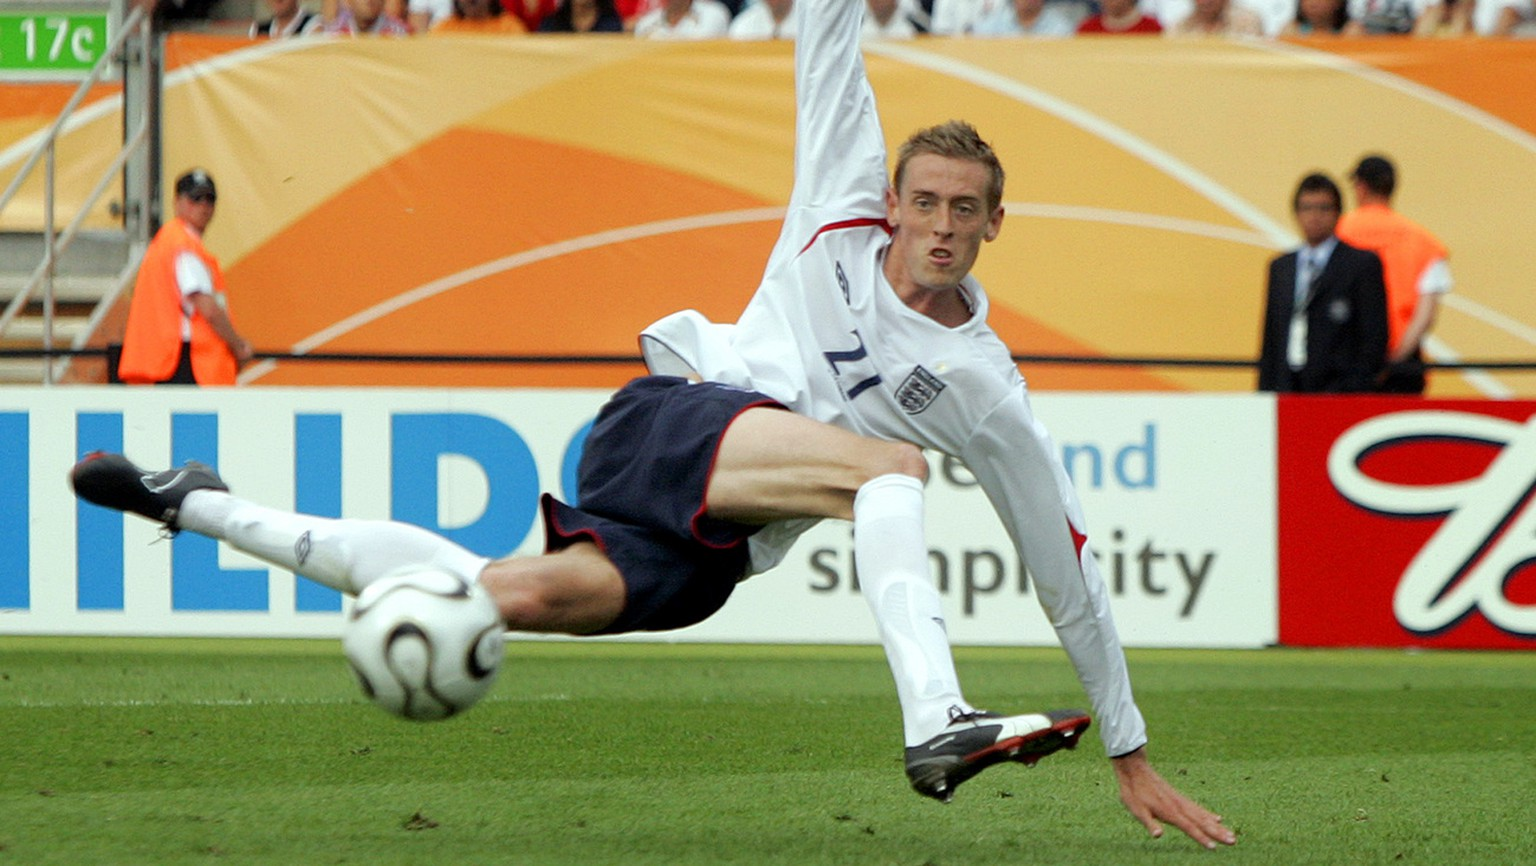 England's Peter Crouch blazes wide during their World Cup Group B soccer match against Trinidad and Tobago  in Nuremberg, Germany, Thursday, June 15, 2006. Other teams in the group are Paraguay and Sweden. (KEYSTONE/AP Photo/Matt Dunham) ** MOBILE/PDA USAGE OUT **